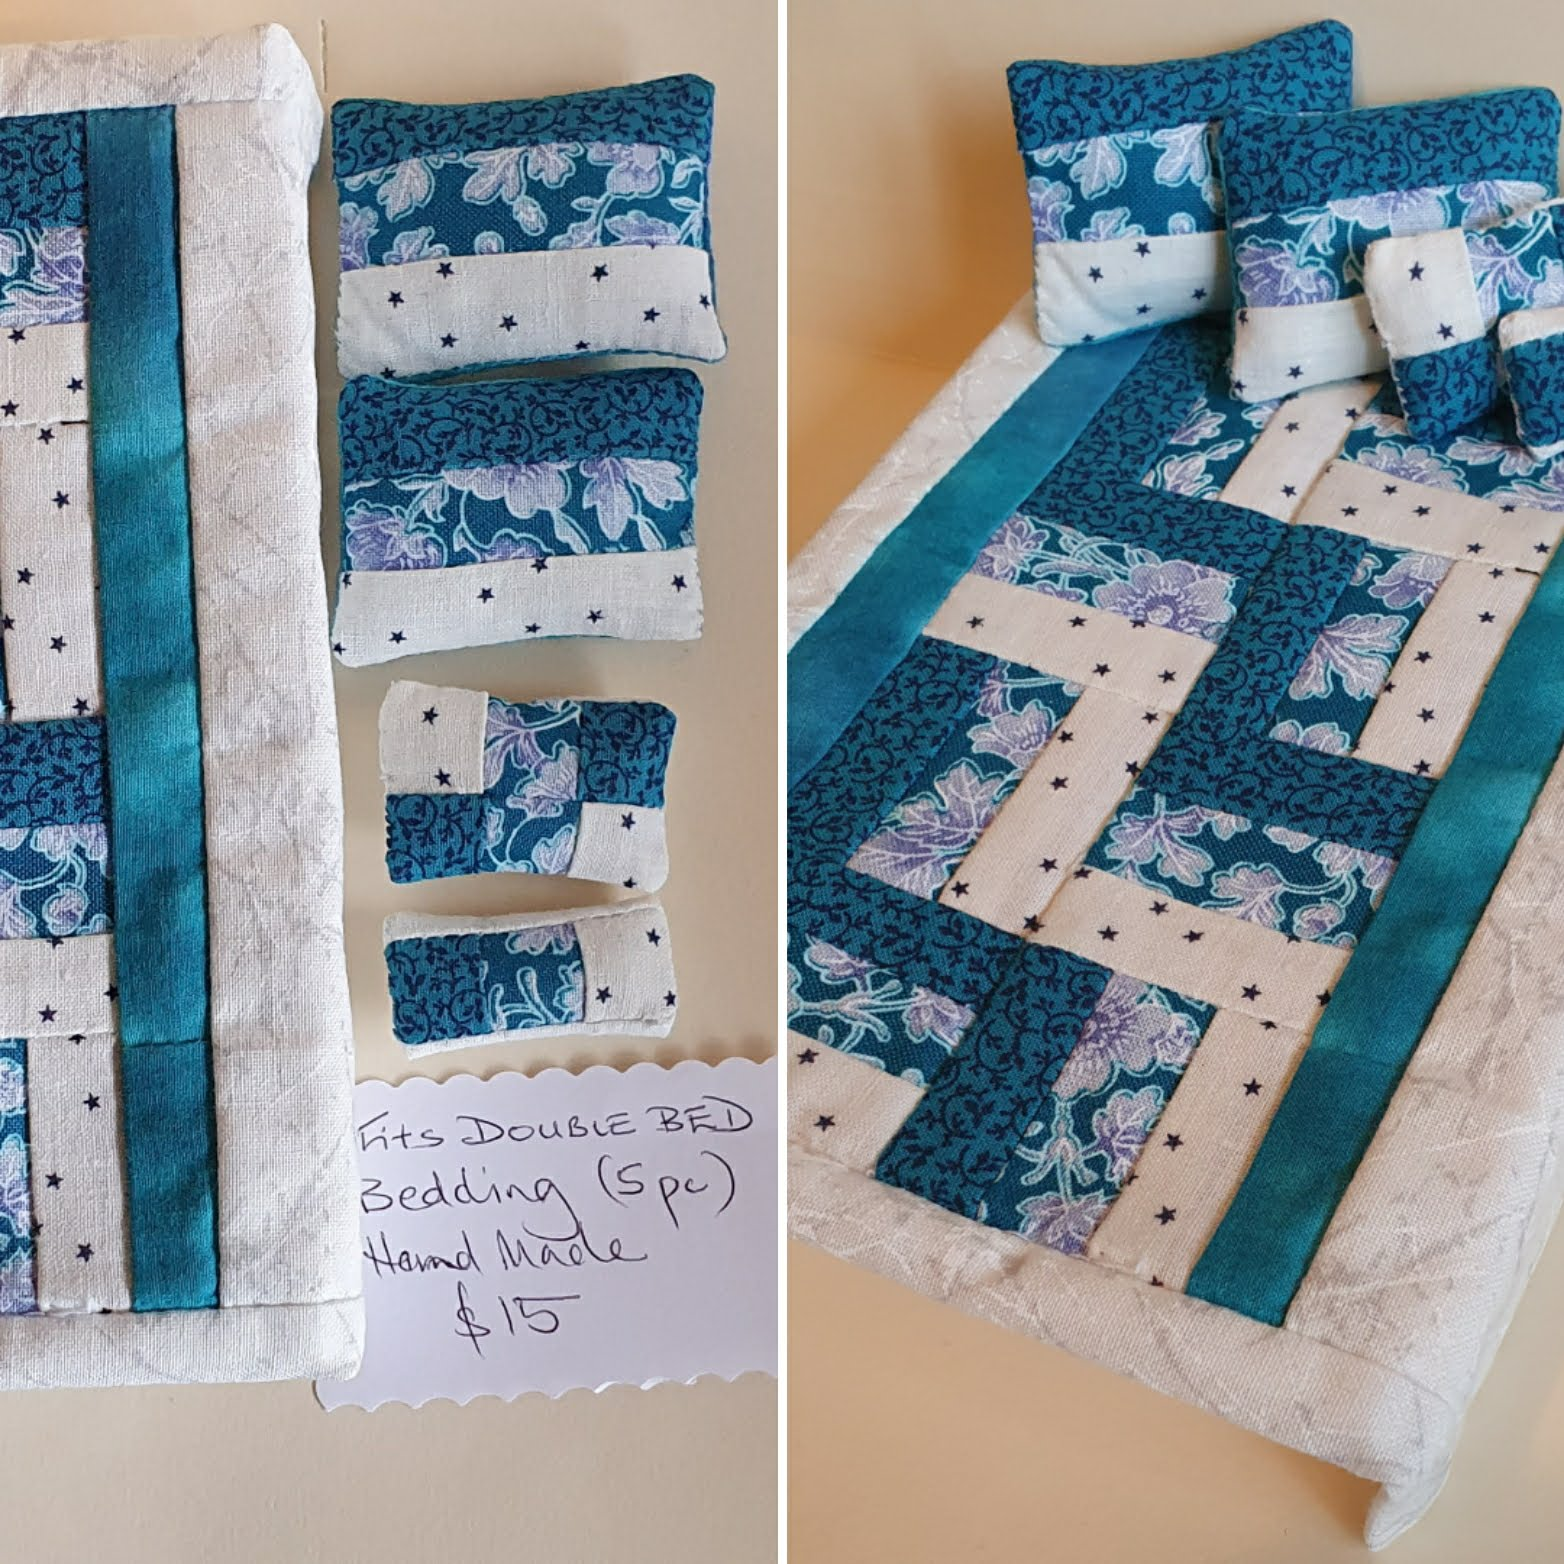 D/bd Quilt Set, Blue/white $15